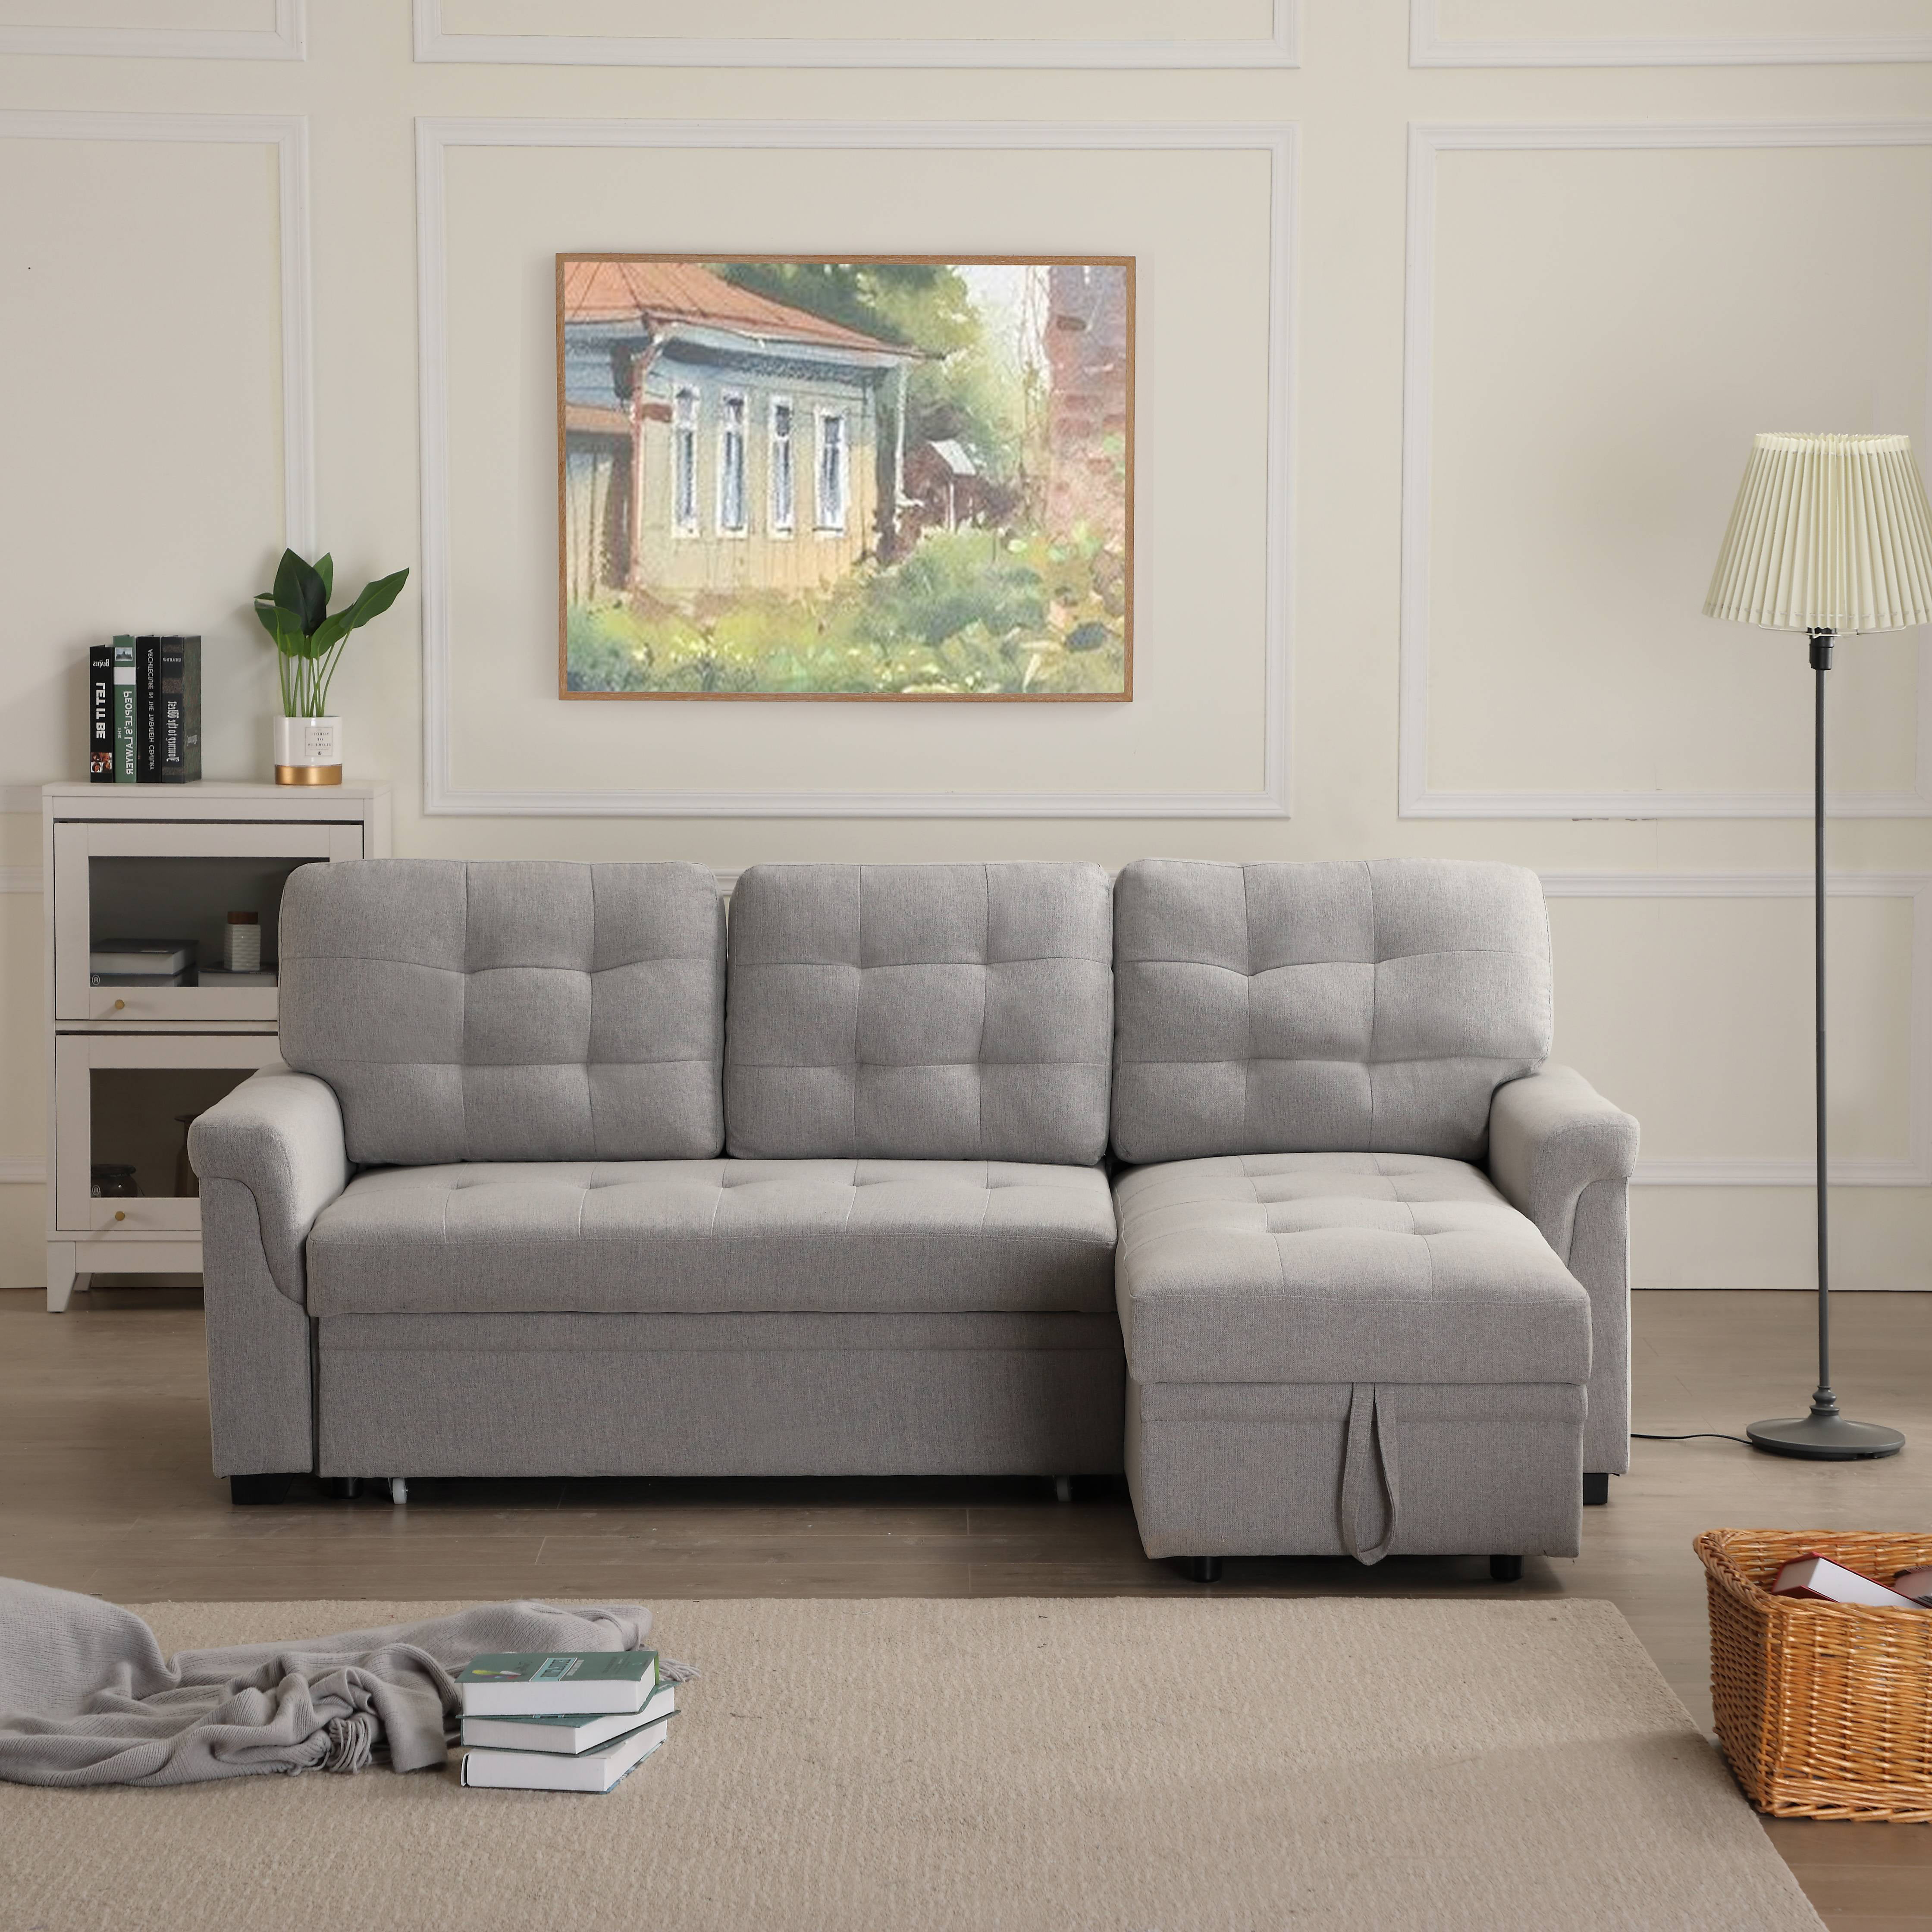 Picture of: Segmart Mid Century Modern Sofa Bed With Fold Out Twin Size Sleeper And Solid Frame 33 X 86 X 54 5 Upholstery Fabric Sectional Sofas Sleeper Bed With Solid Wood Frame 500lbs Grey S1749